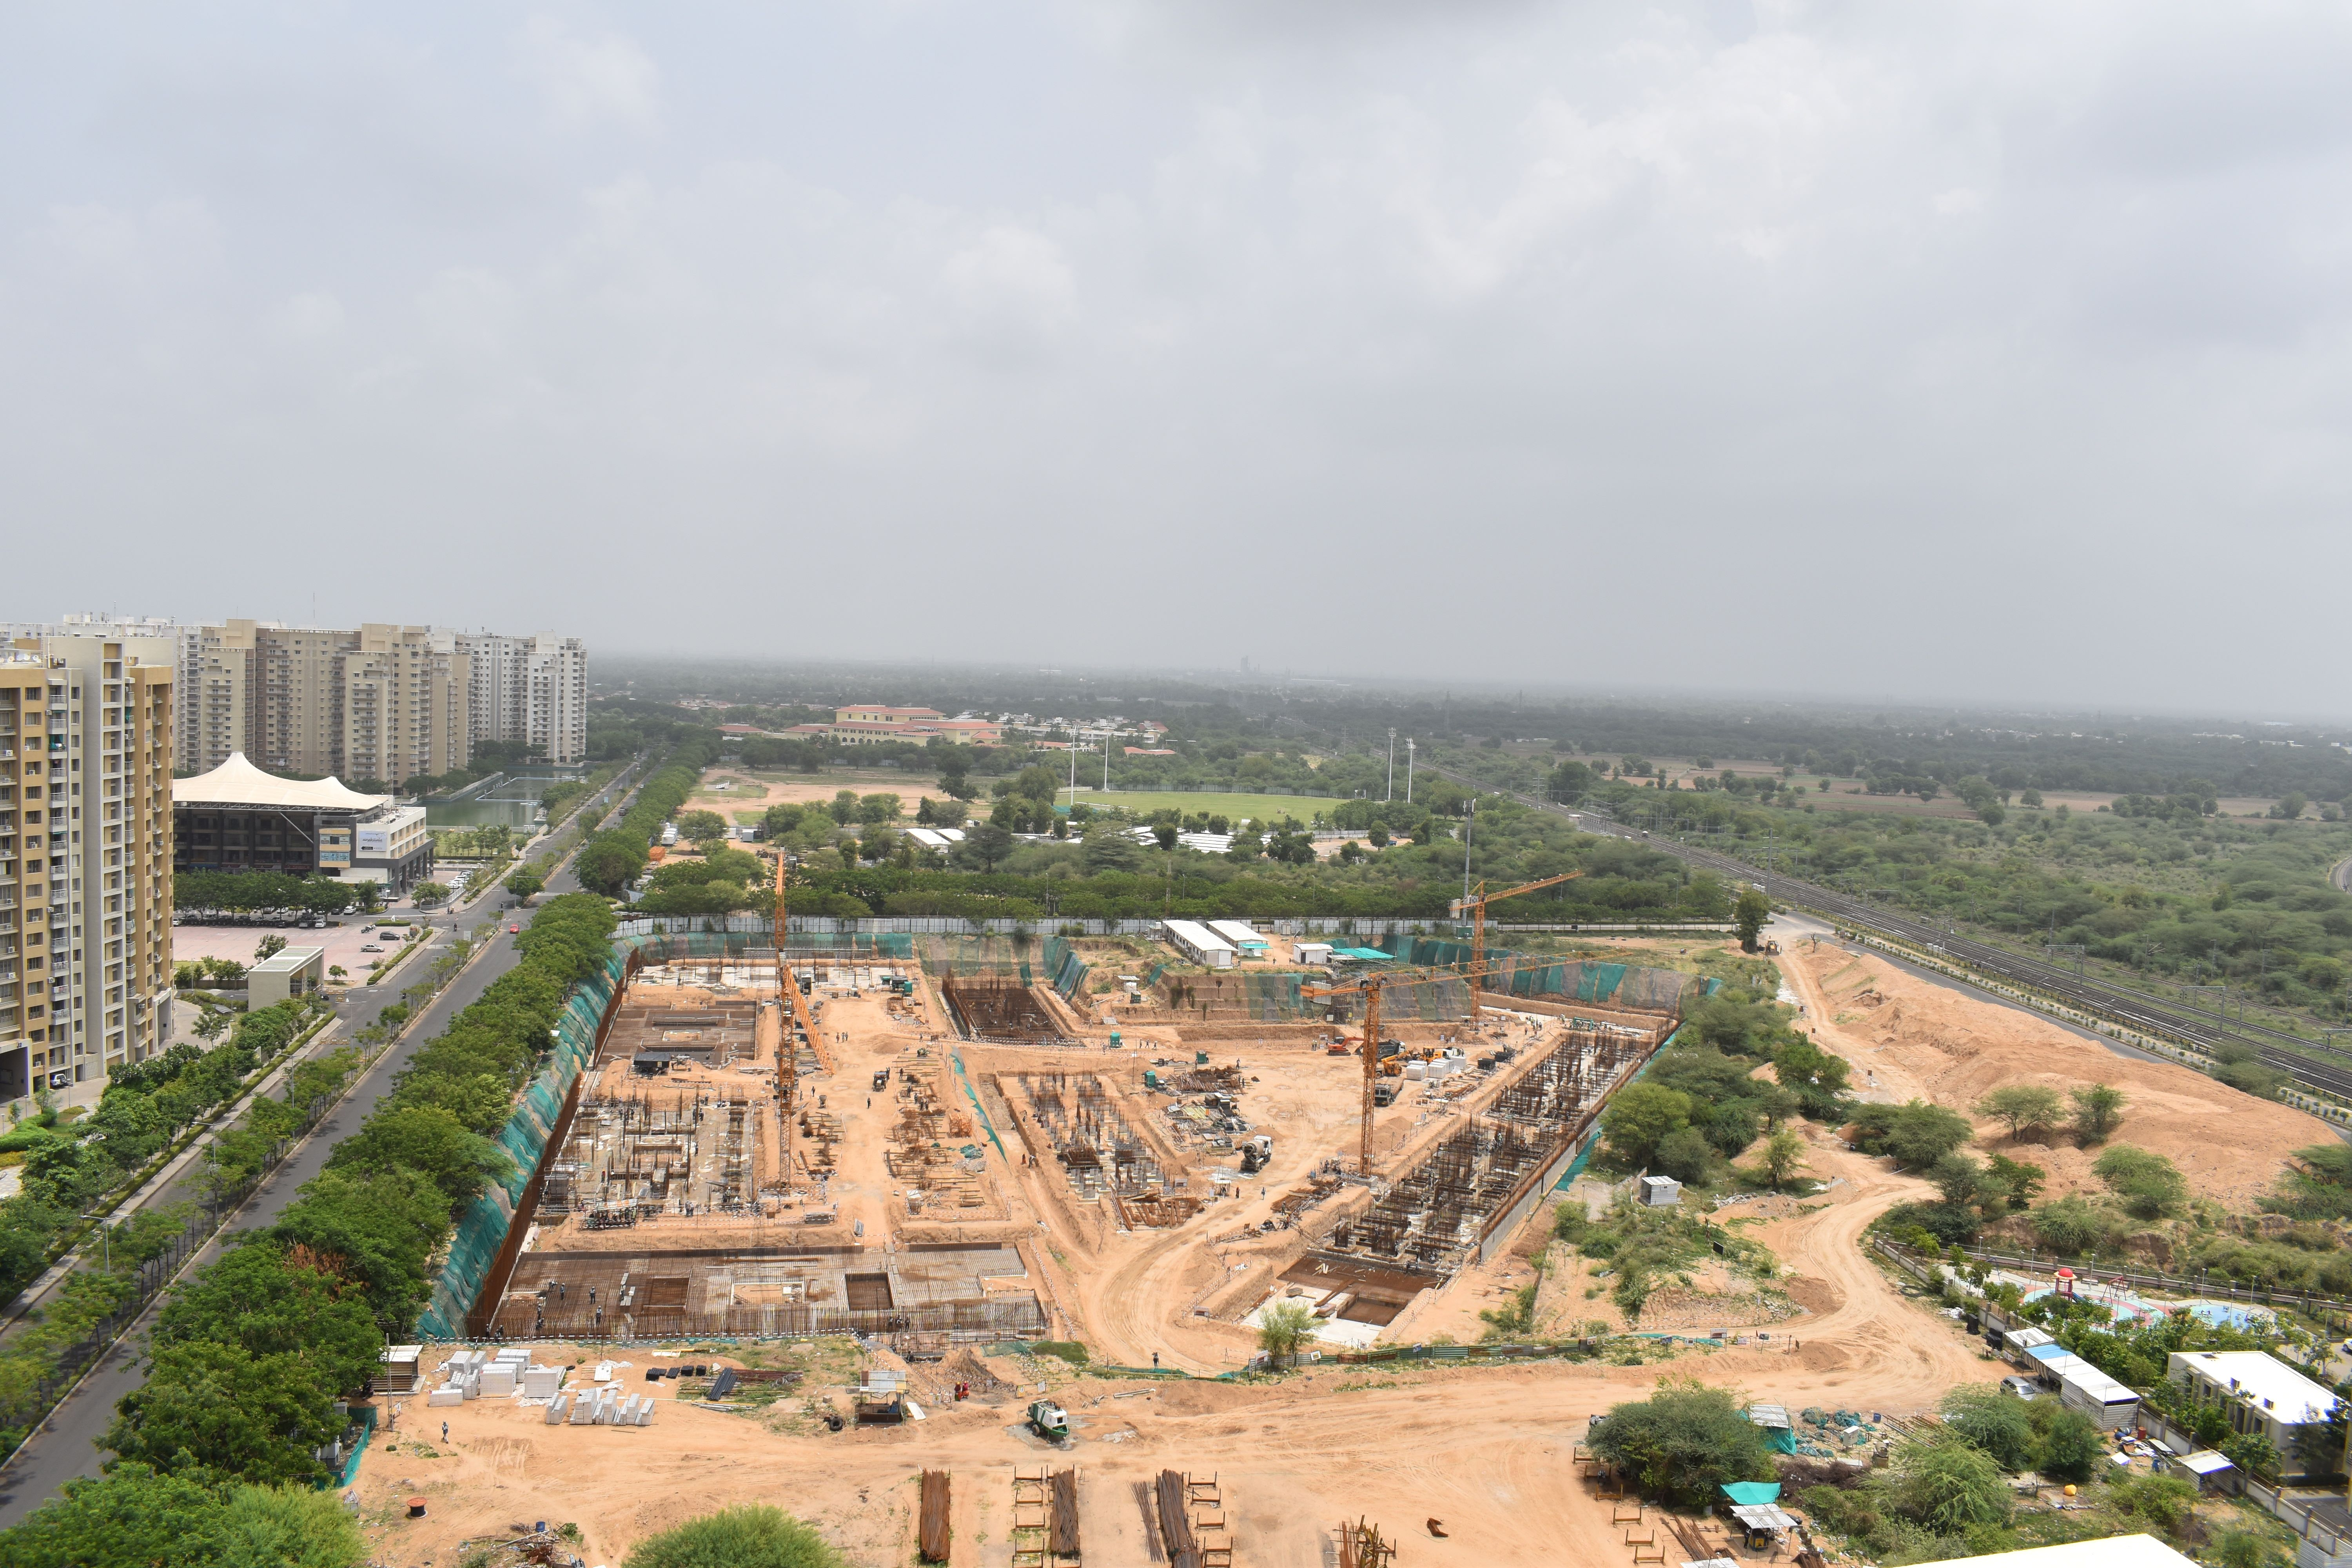 construction site sample image